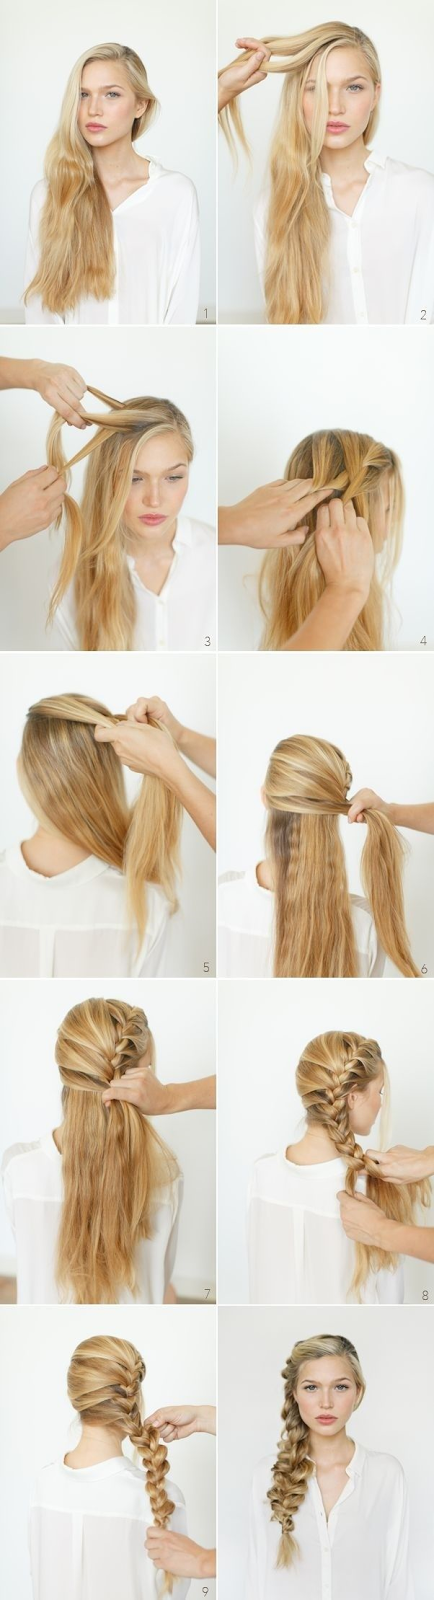 Prom Hairstyles 2015 for Women}